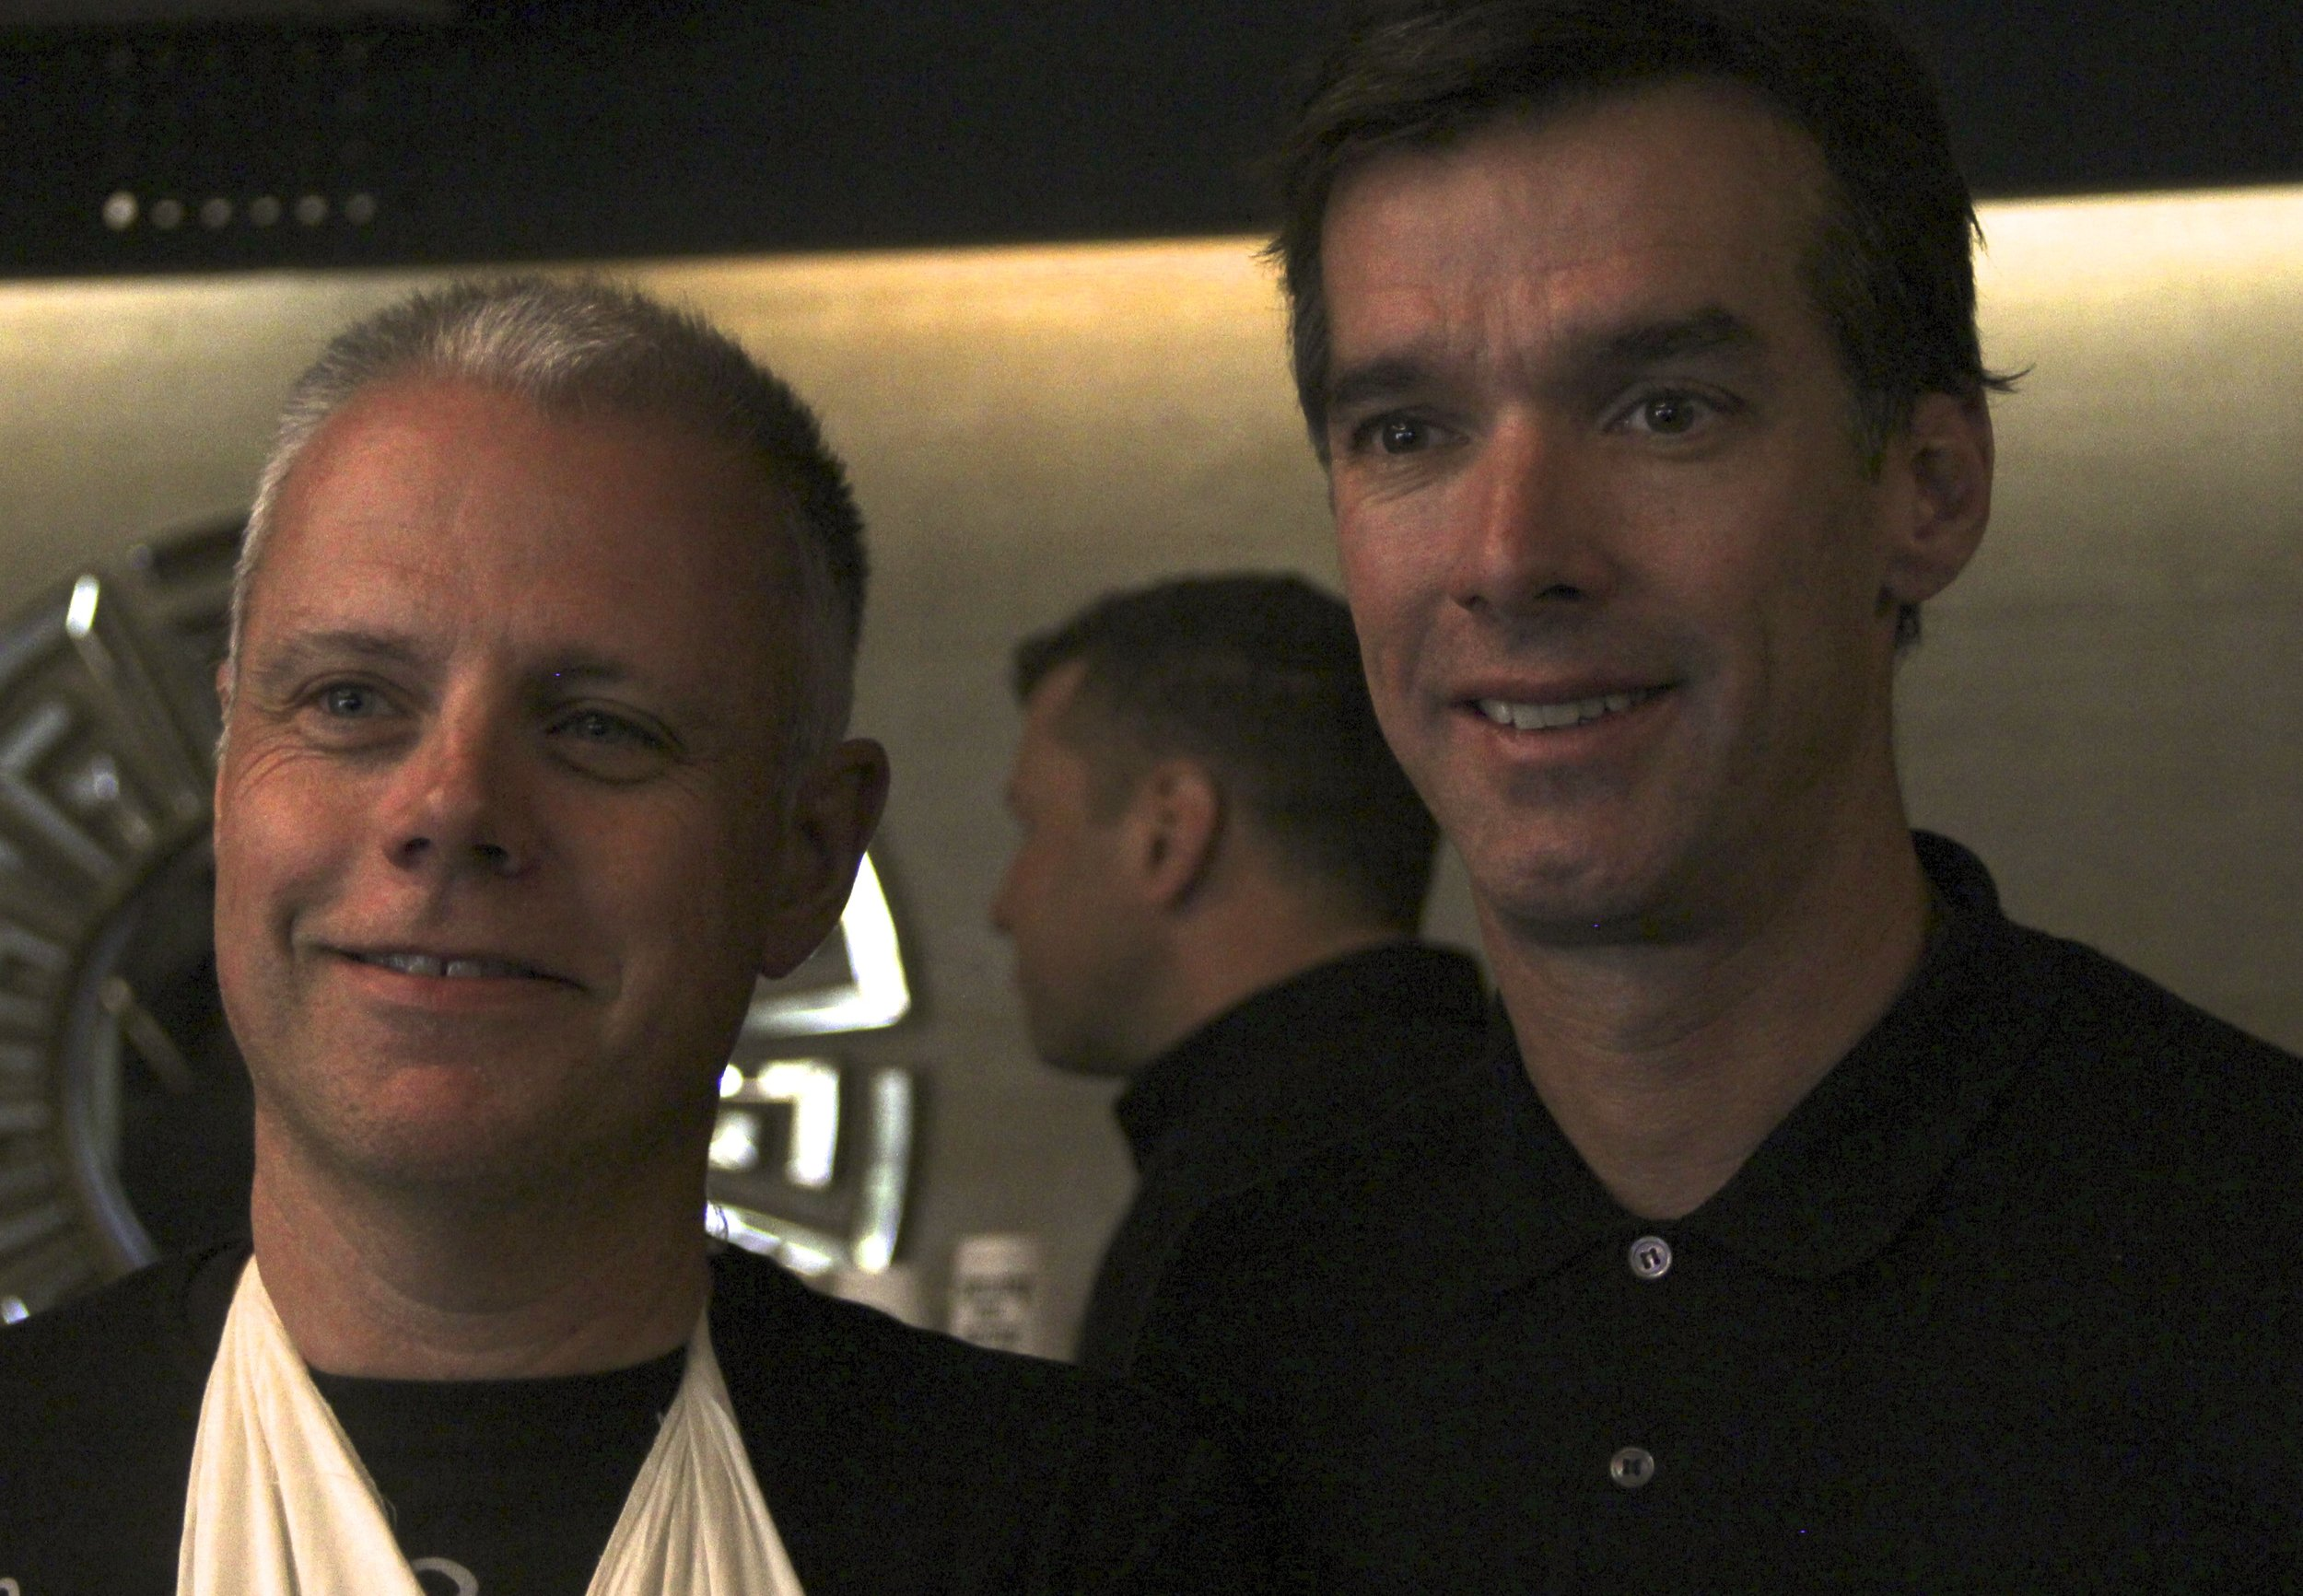 David Millar, comfortably ensconsed in the Maserati Lounge, rubs shoulders with the public